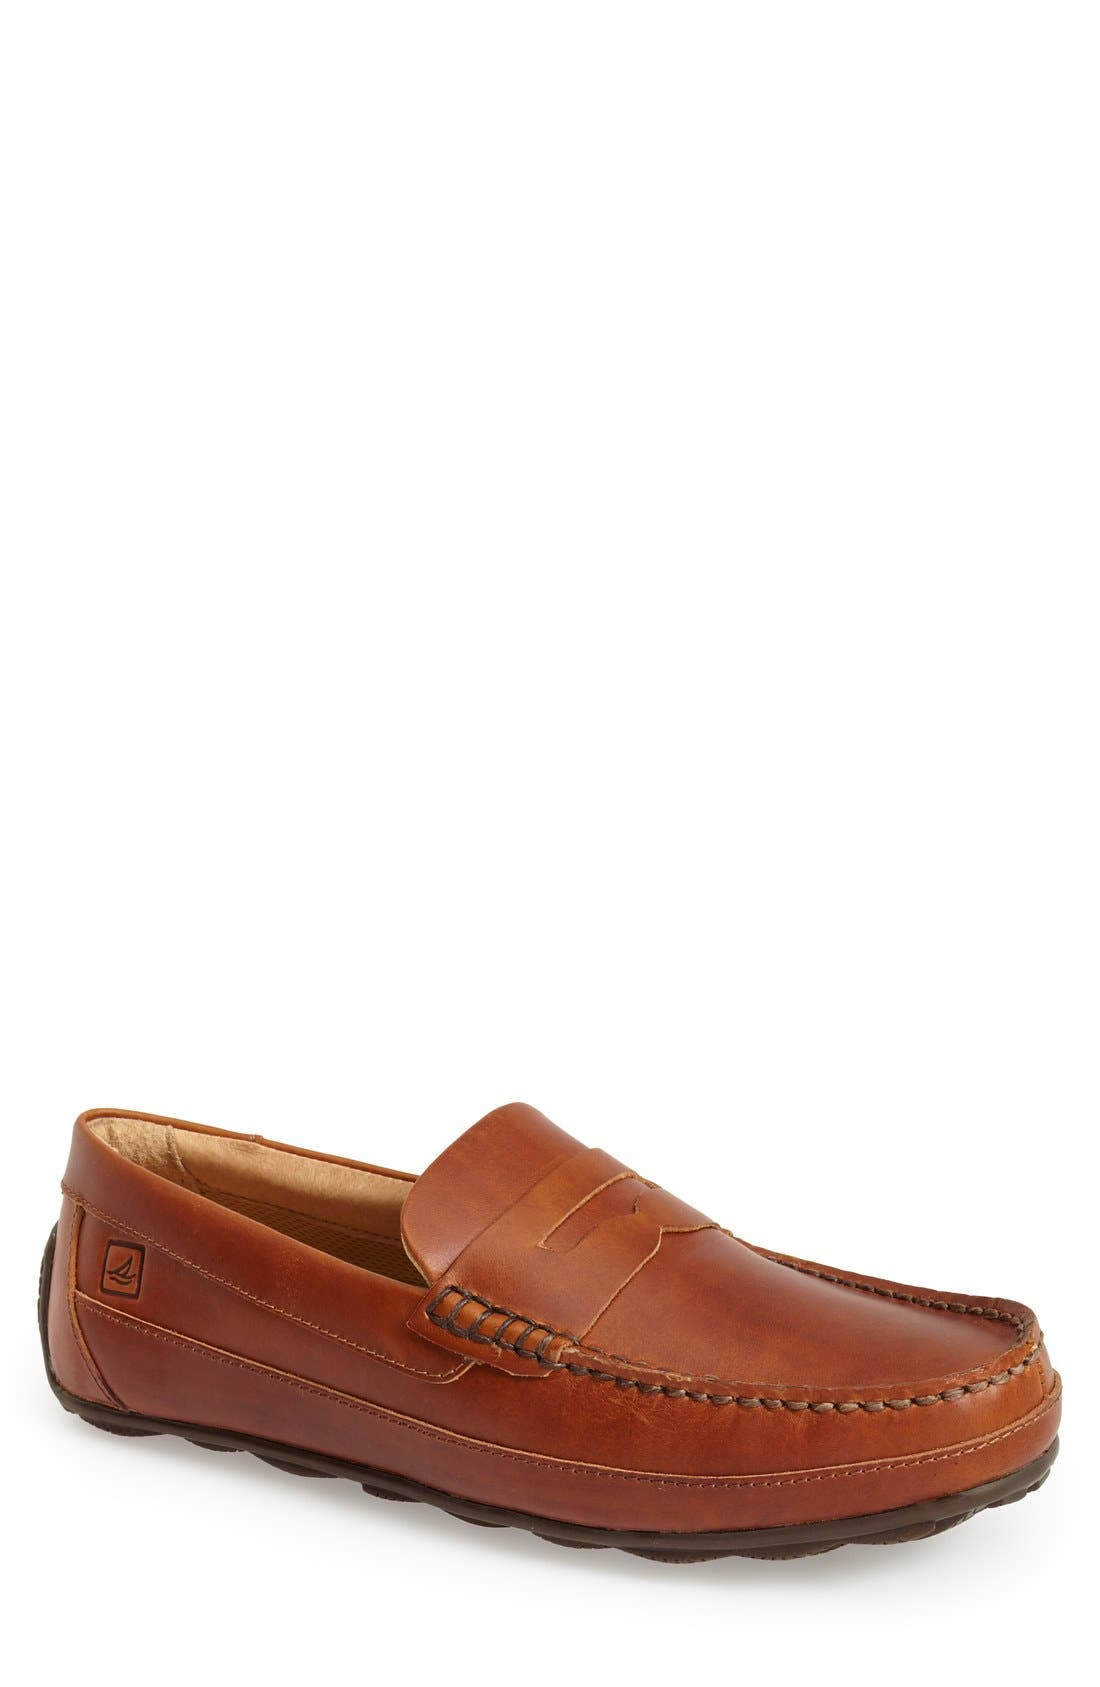 SPERRY, 'Hampden' Penny Loafer, Main thumbnail 1, color, TAN